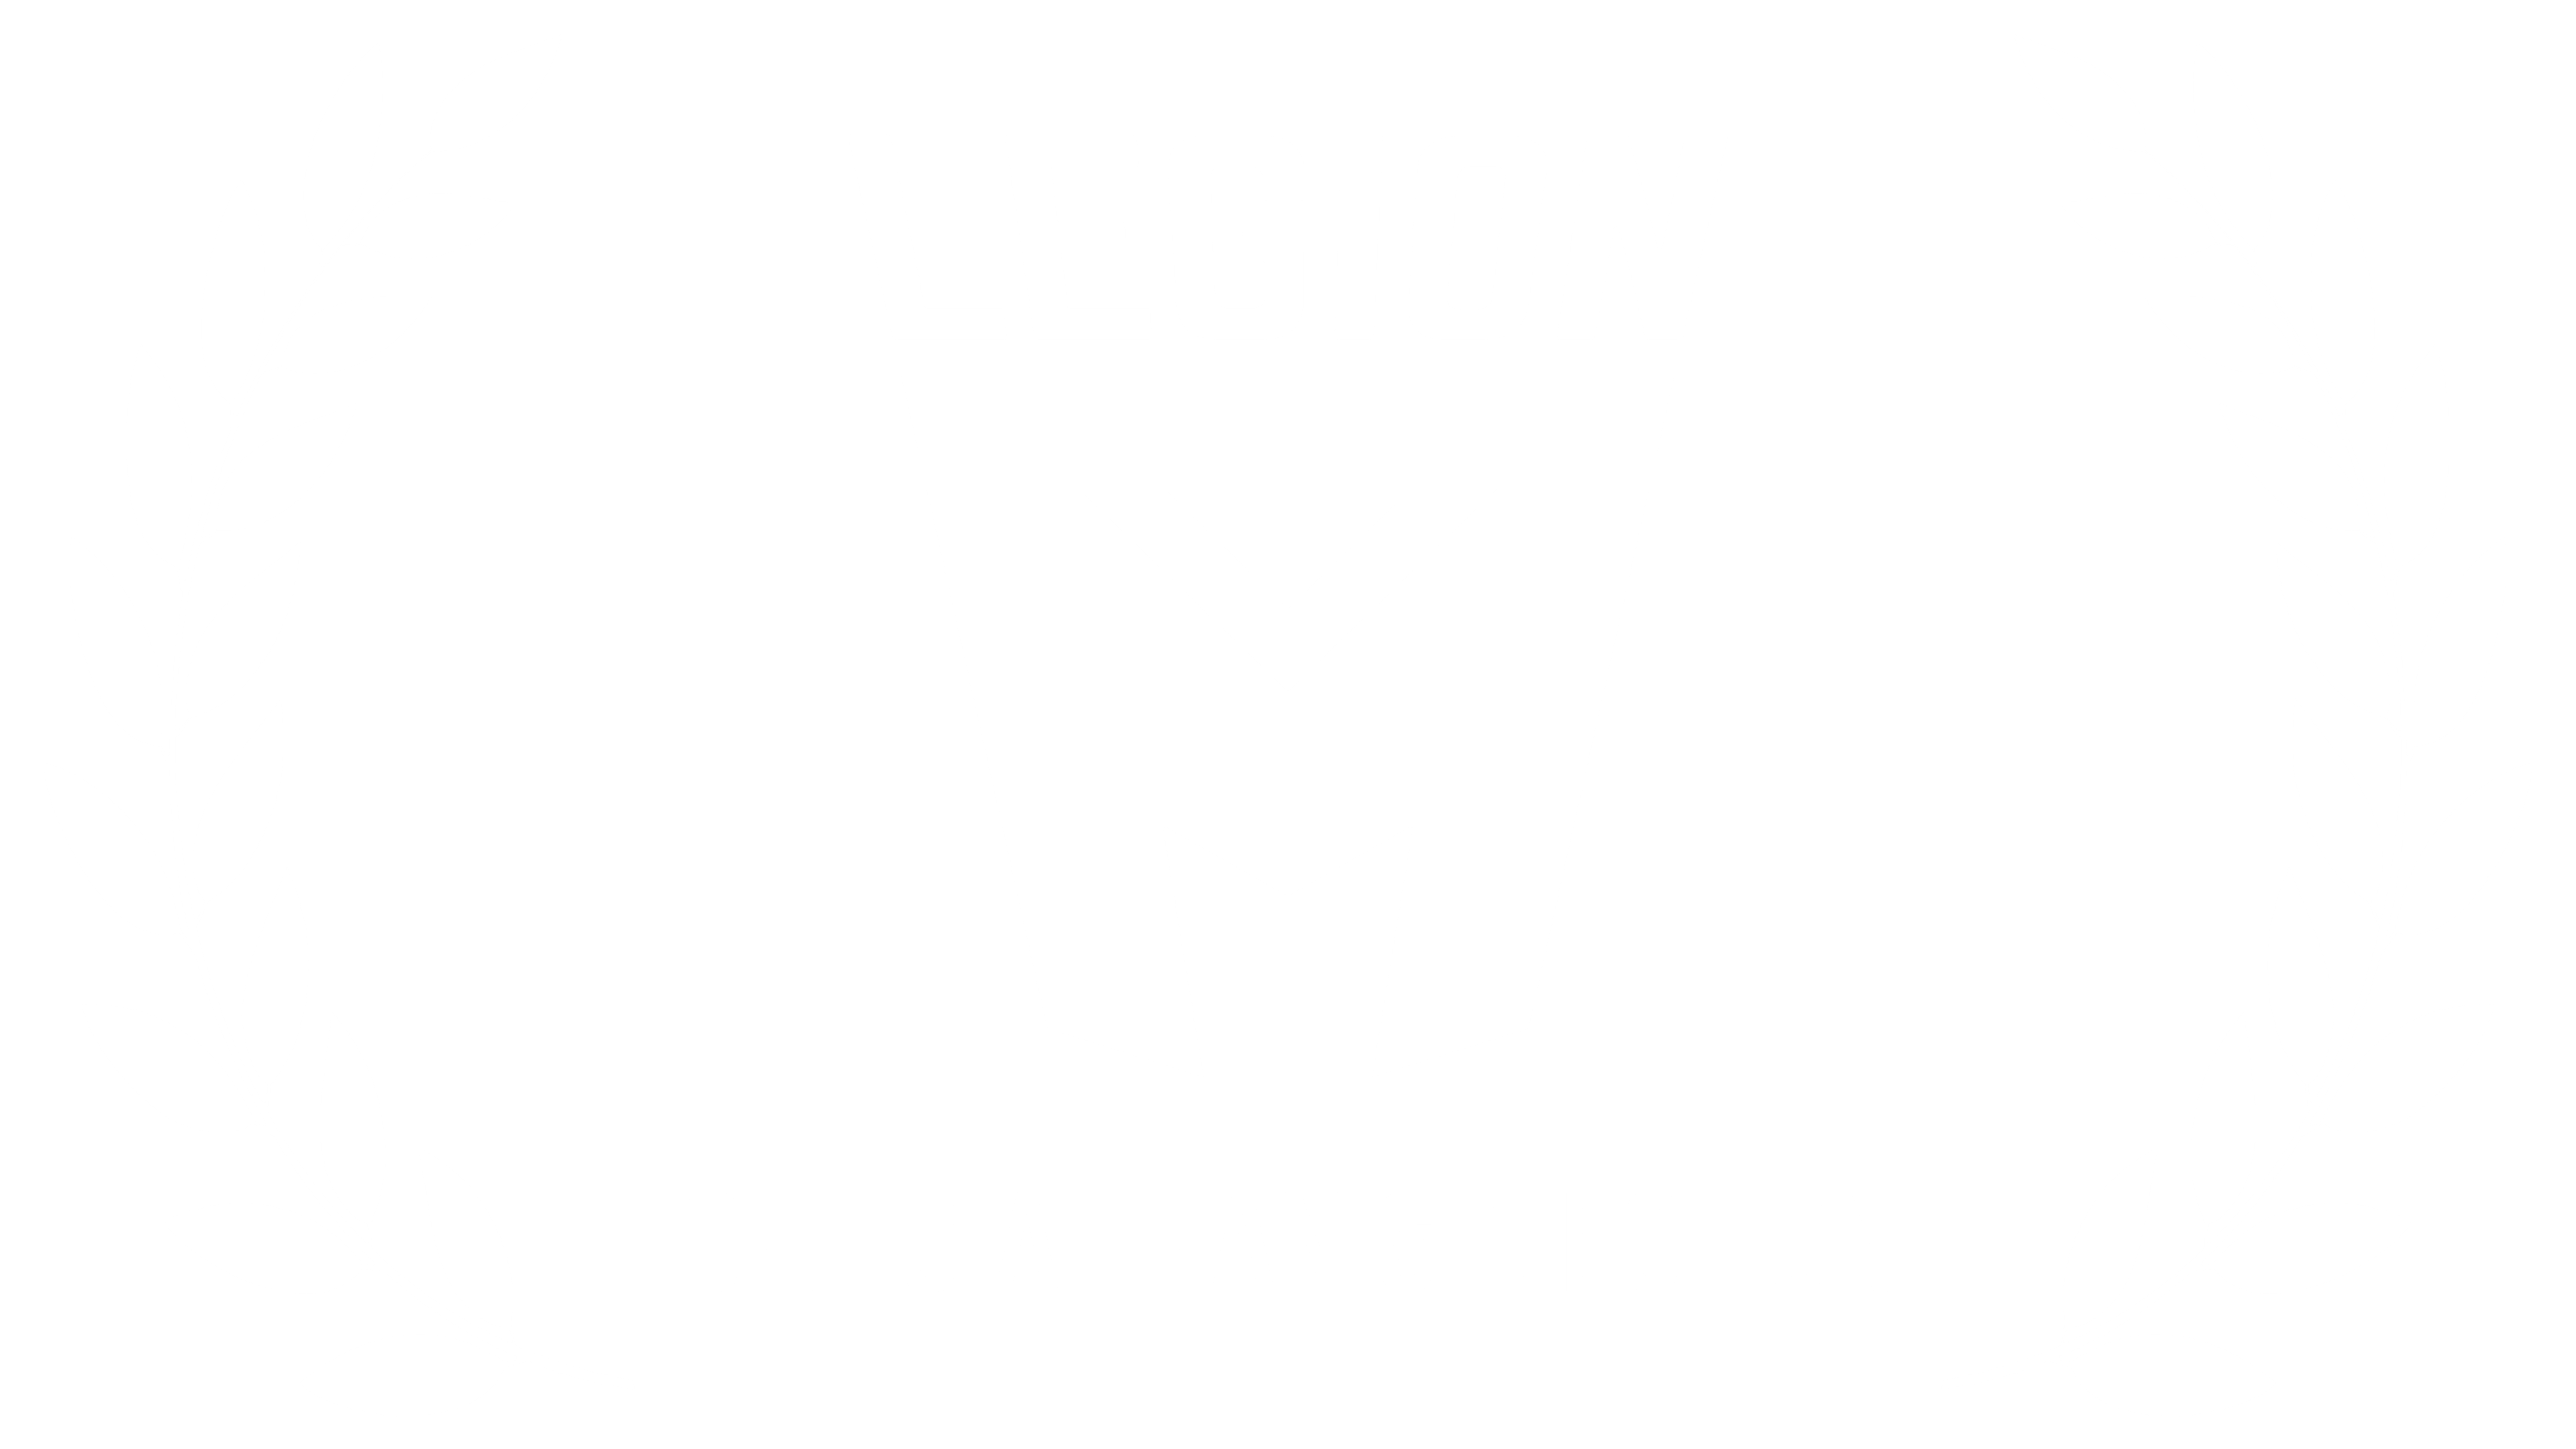 legion m selection